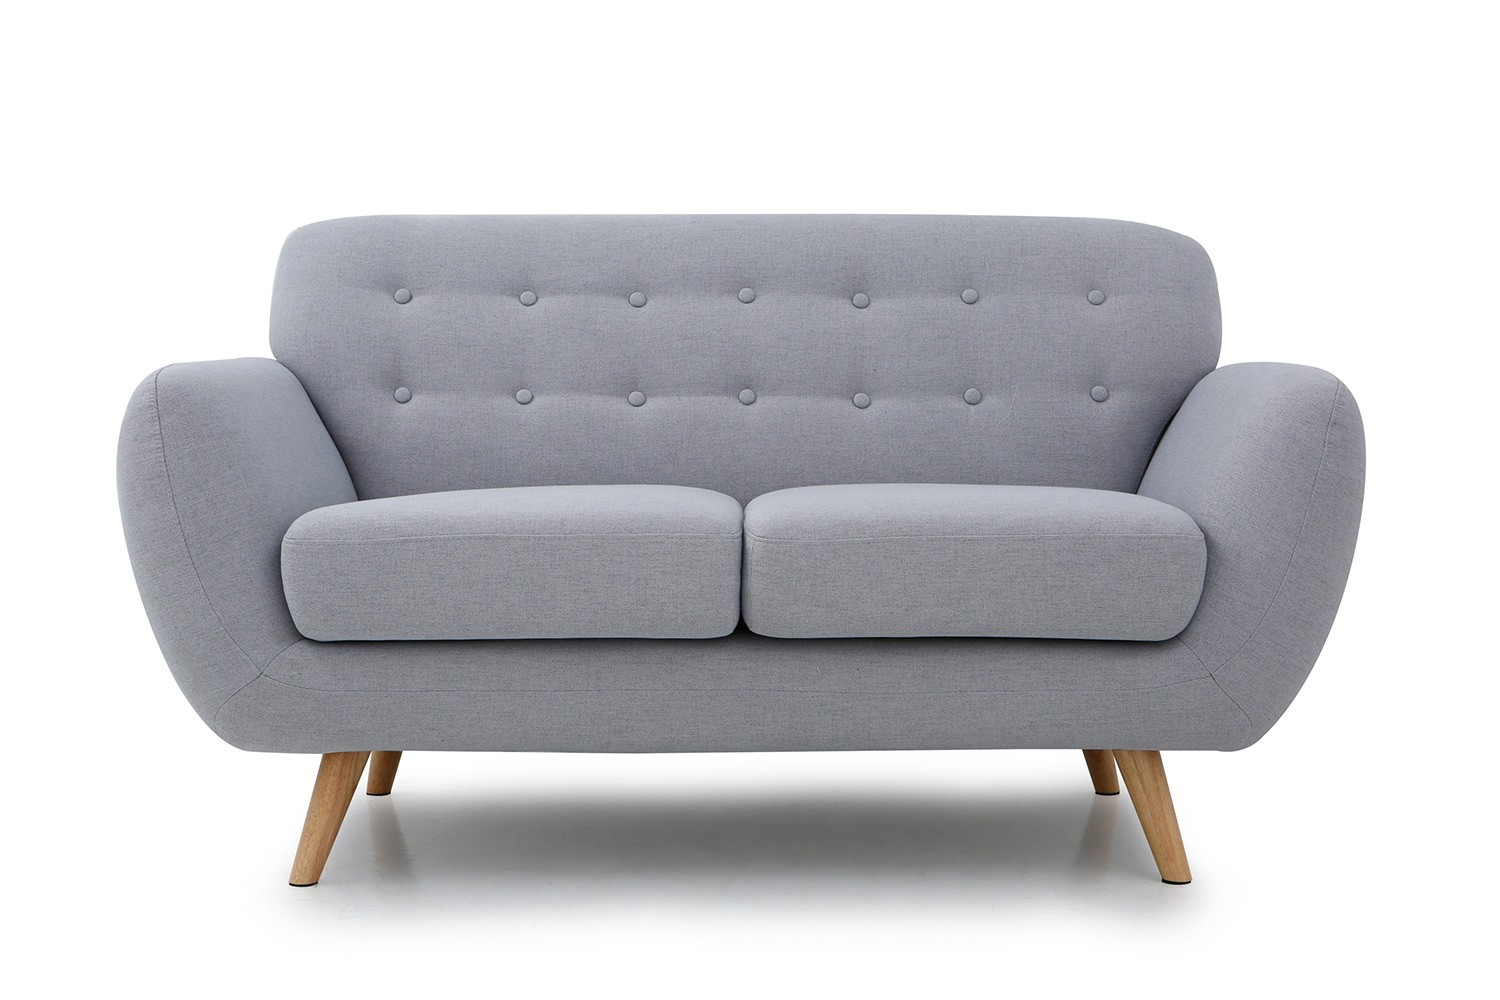 Oslo 2p canap scandinave 2 places gris clair canap s for Canape 9 10 places